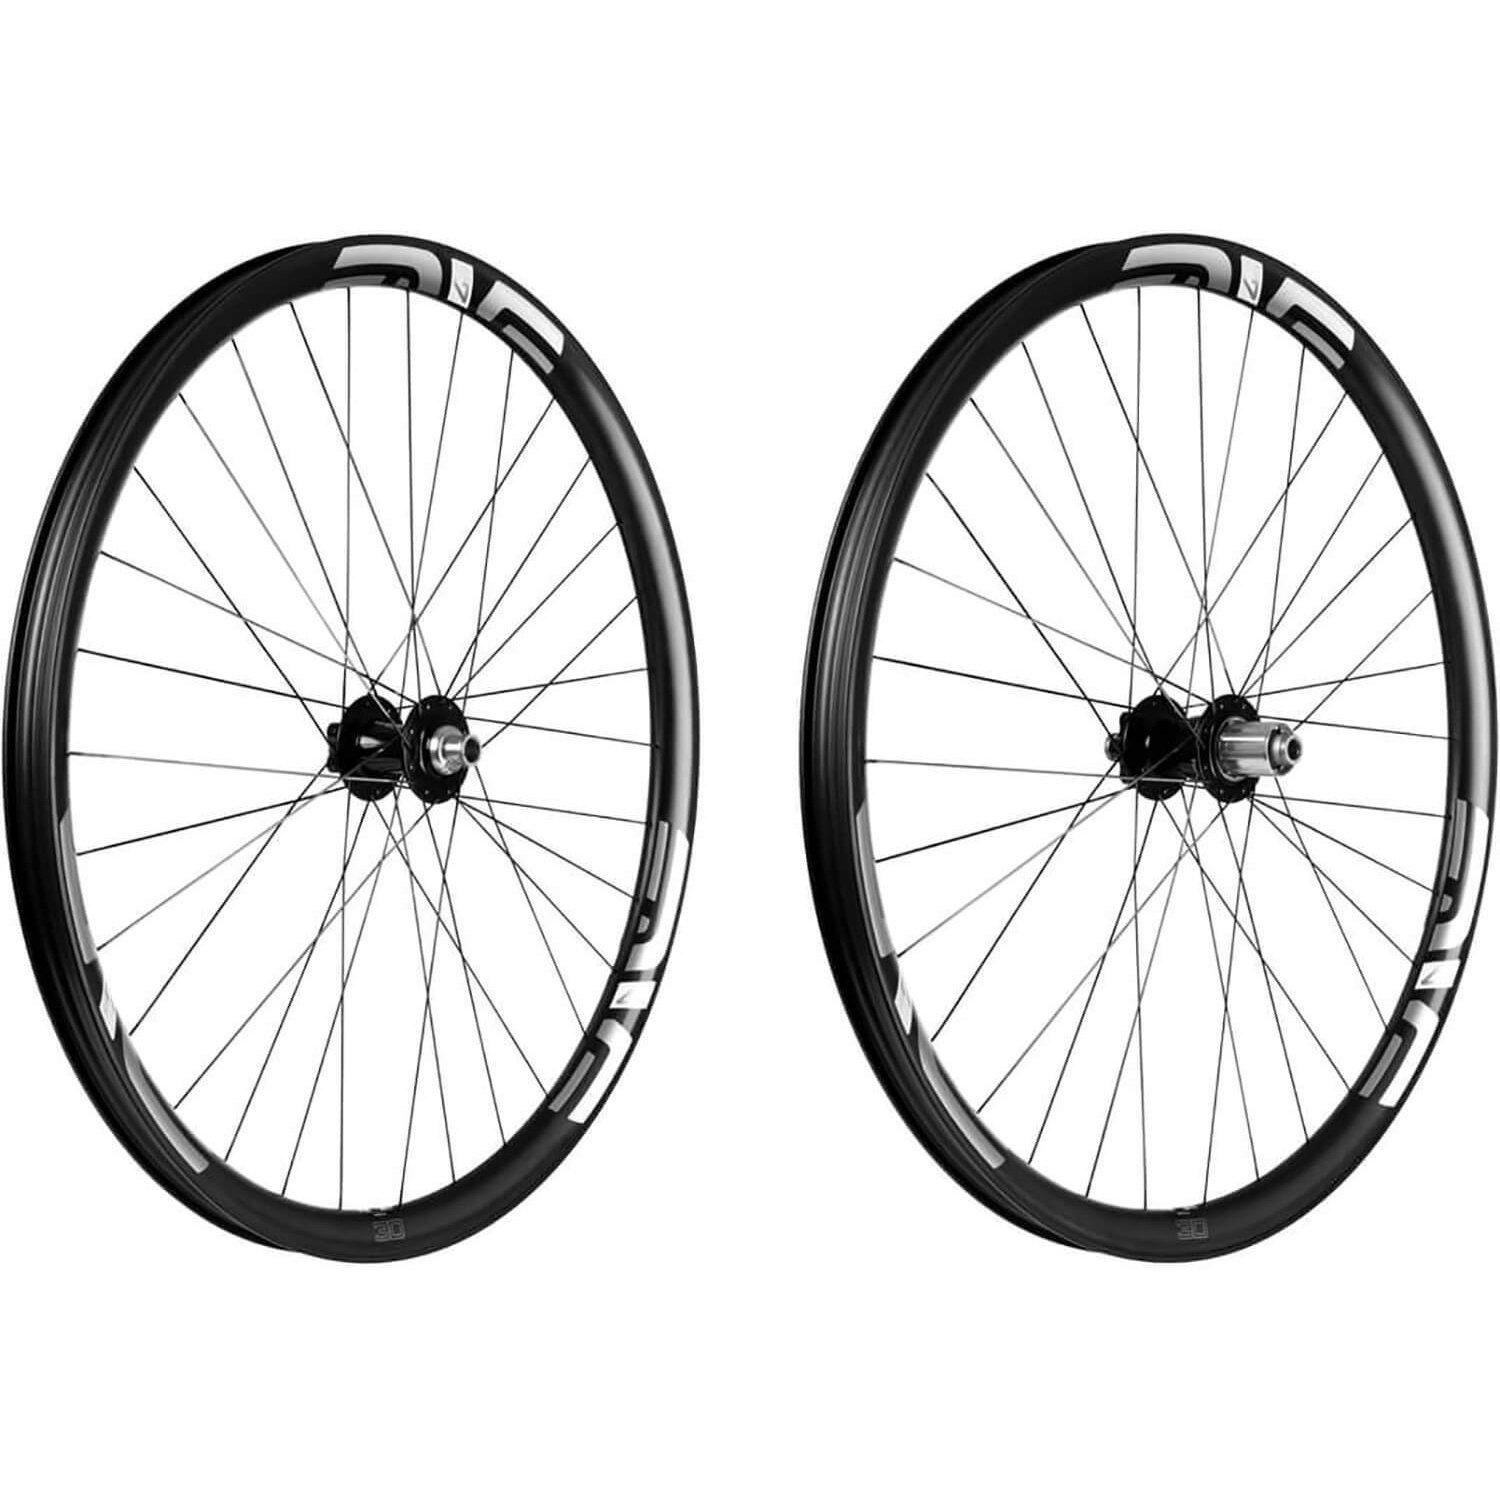 ENVE-ENVE M730 MTB Wheelset – Chris King Hubs-Black – Shimano-29-EN1327CK1002106009-saddleback-elite-performance-cycling